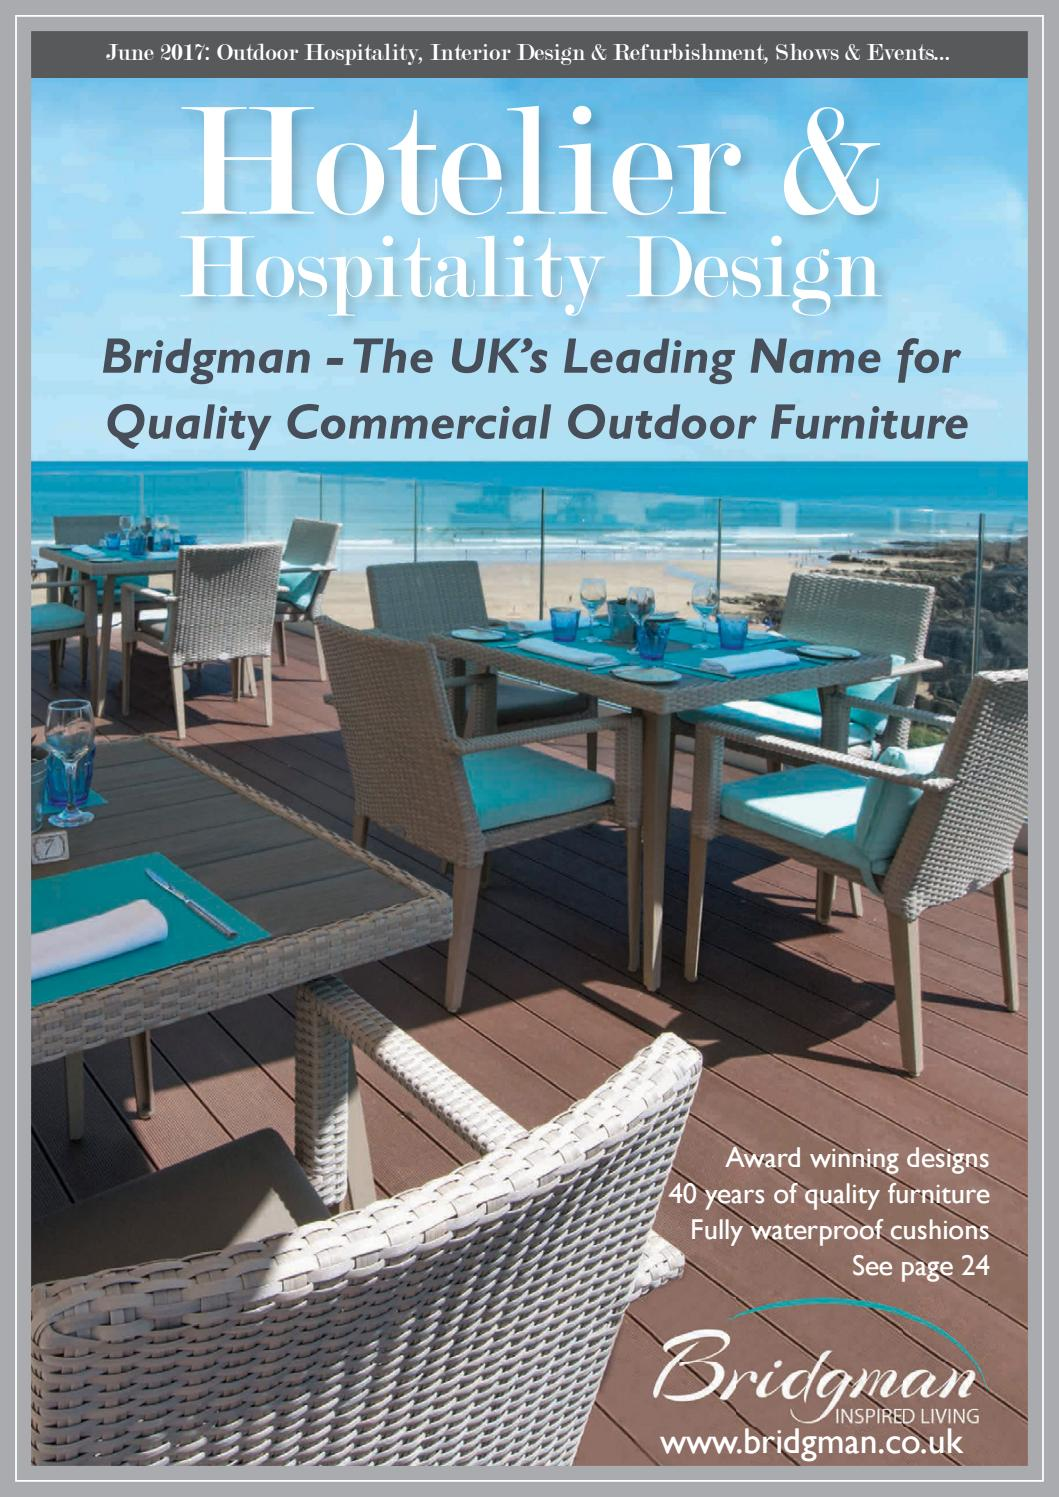 Stackable outdoor chairs lightweight peppermill interiors - Hotelier Hospitality Design June 2017 By Jet Digital Media Ltd Issuu